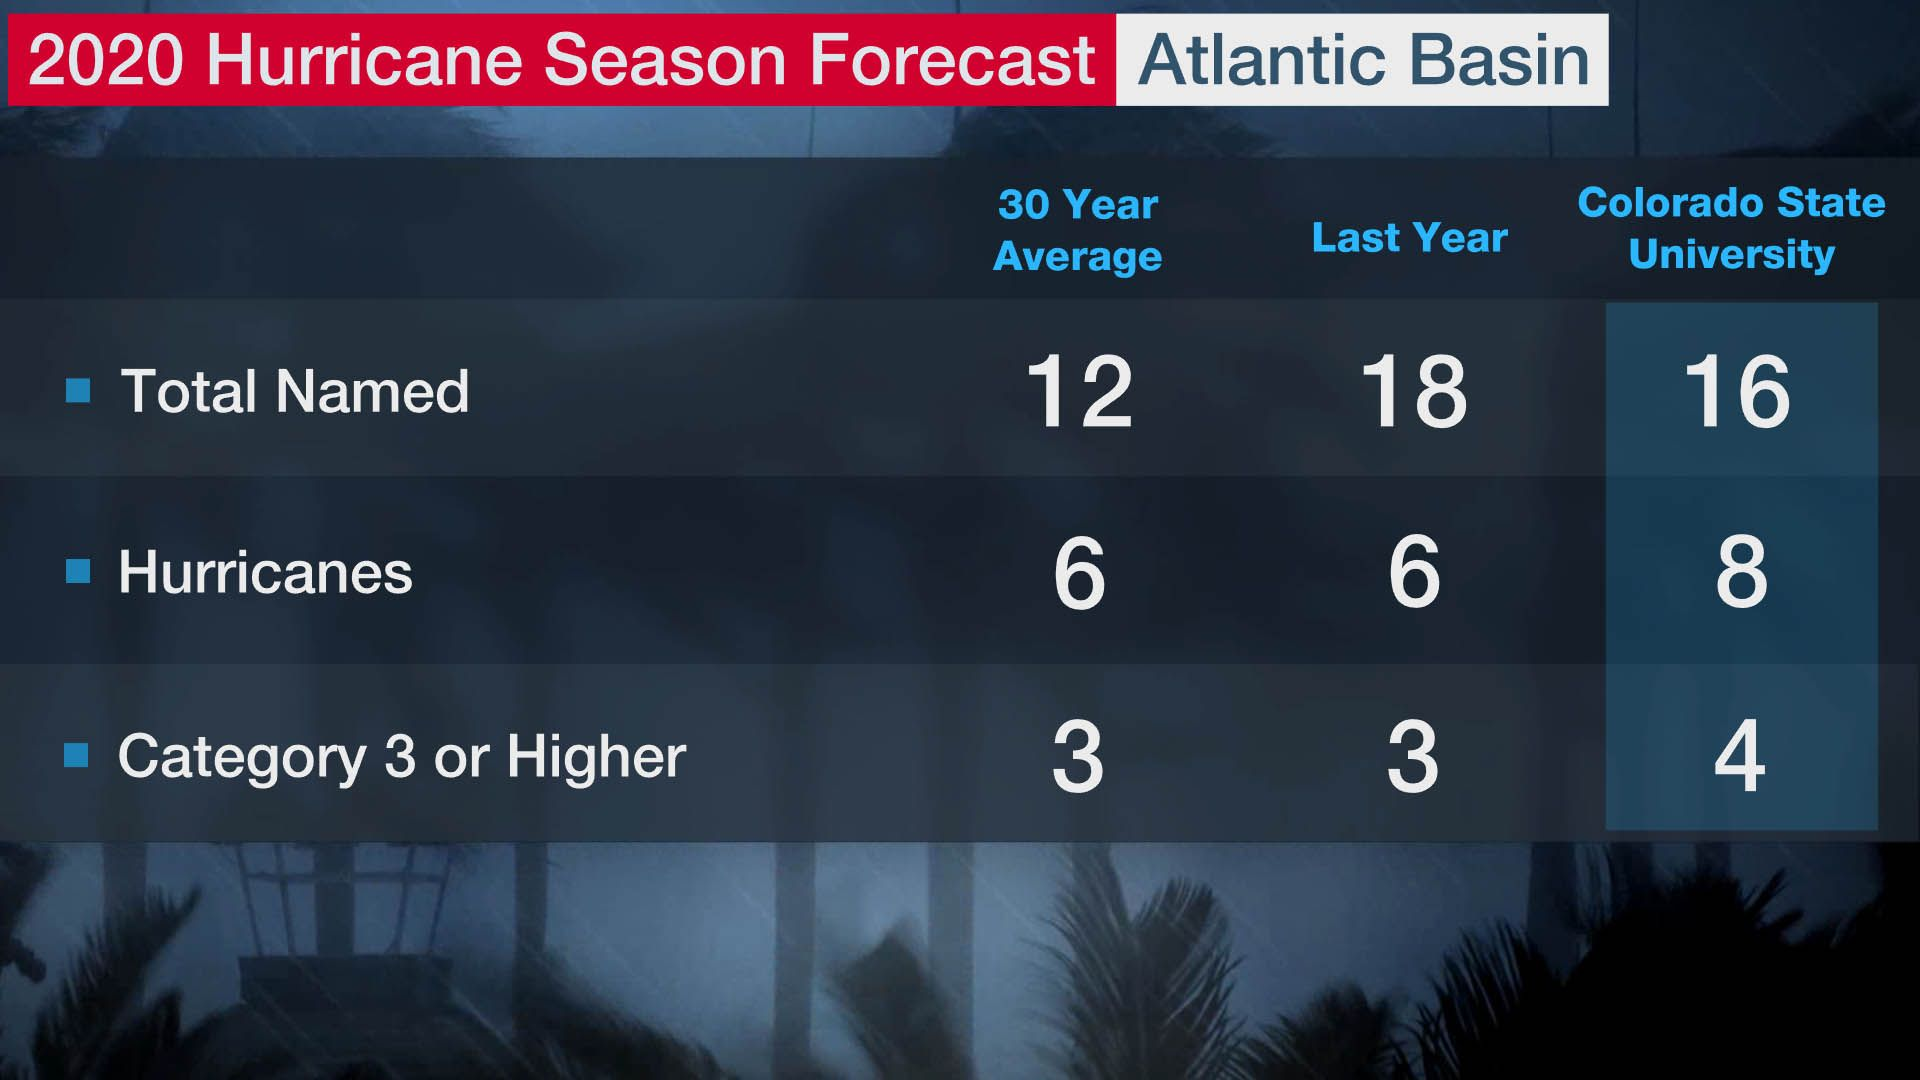 Experts Are Predicting A More Active Hurricane Season In 2020 While The Named Storms May Be Less The Number Of Major H